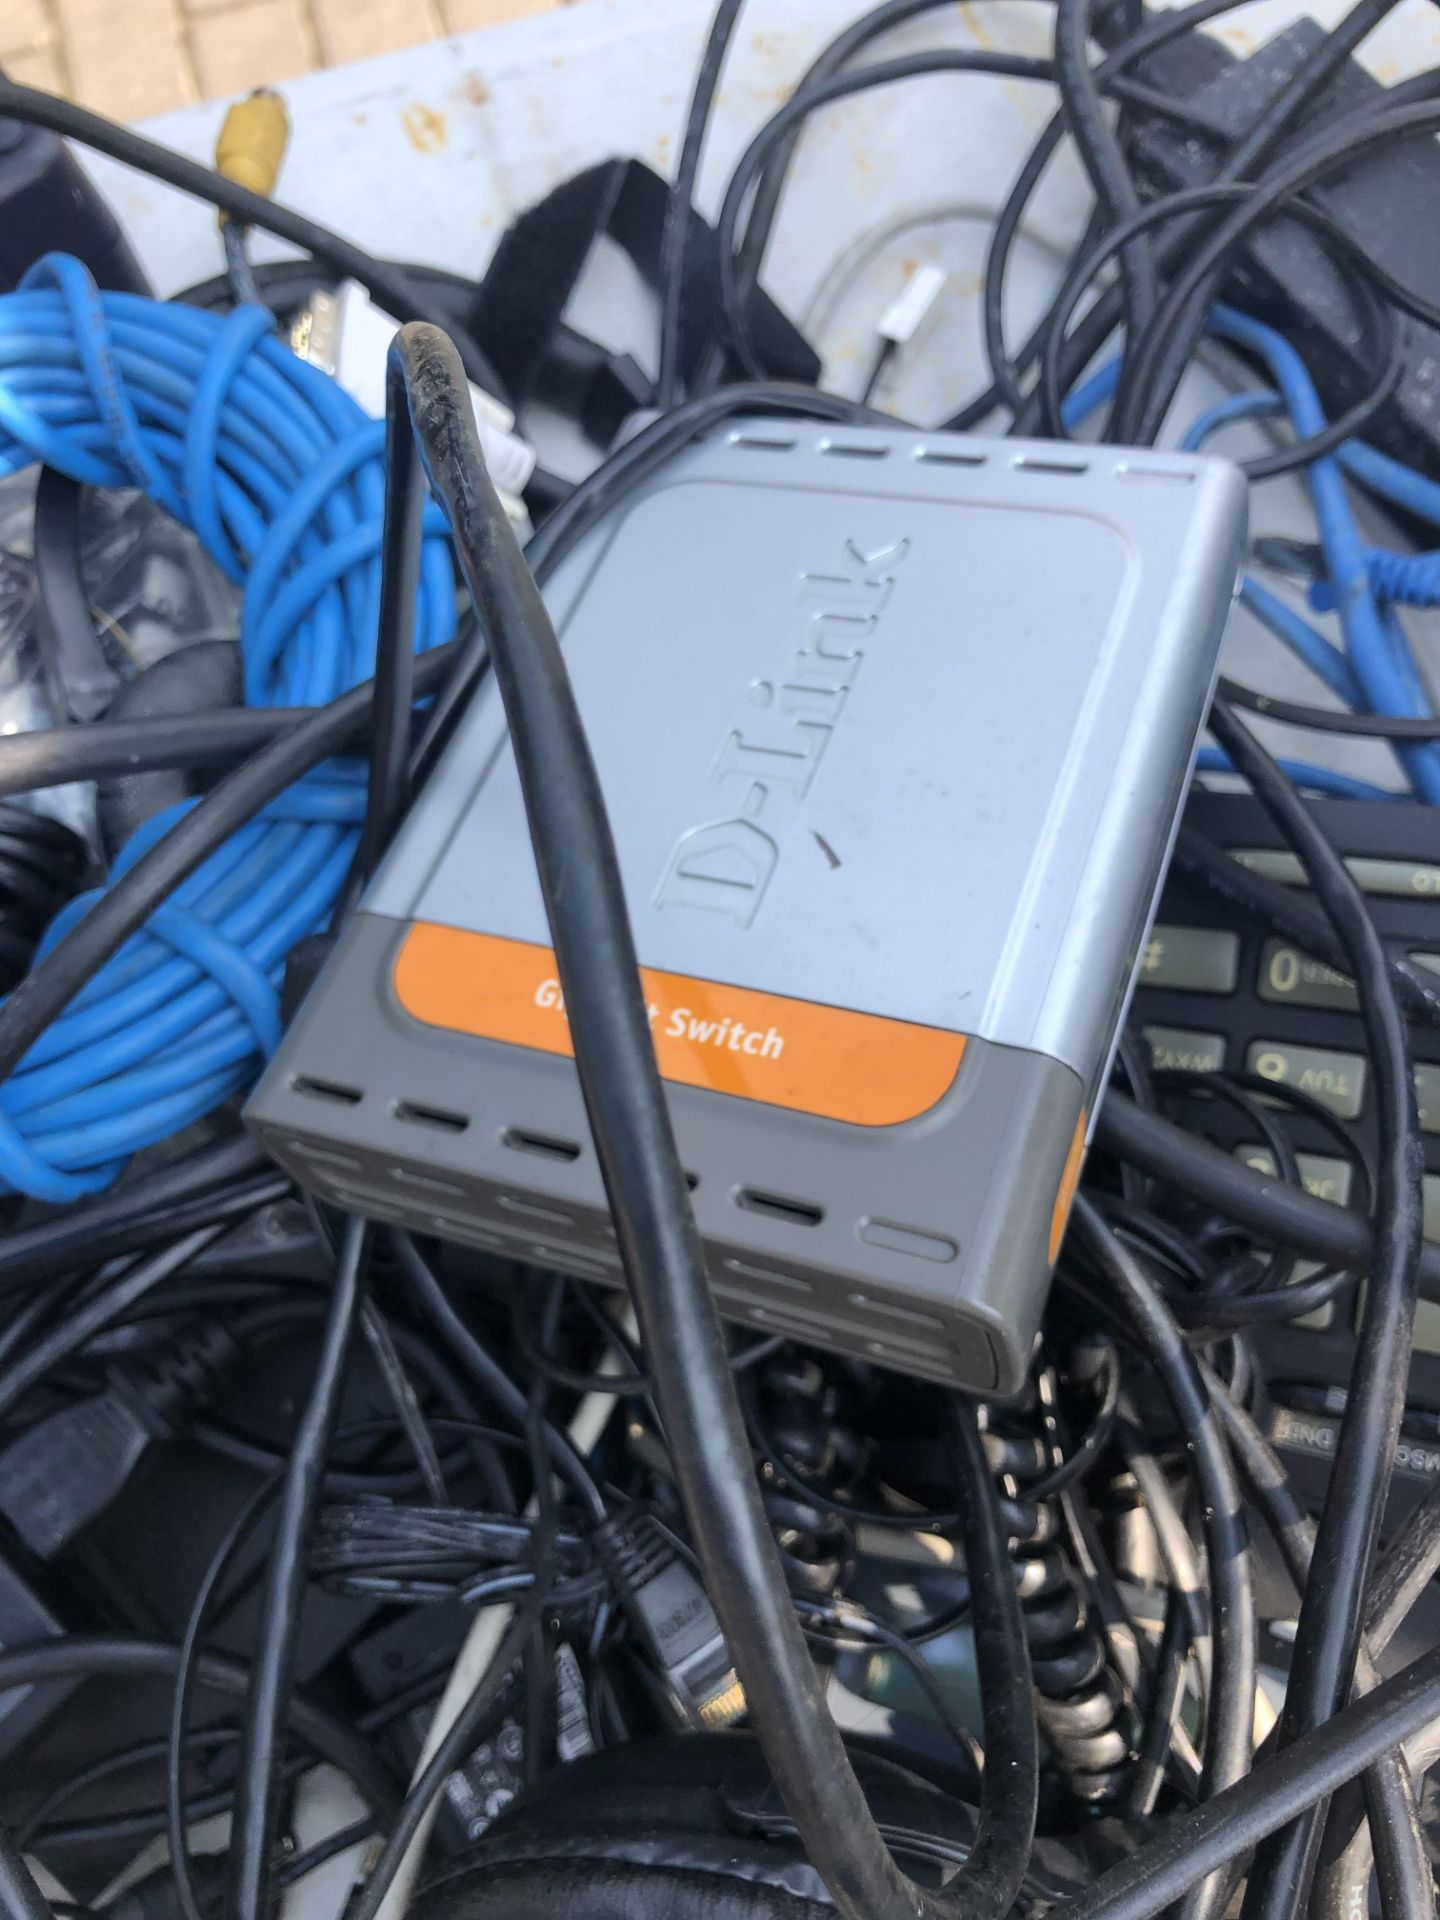 JOB LOT OF OFFICE EQUIPMENT INCLUDES PHONES MODEMS ETHERNET CABLES LAPTOP CHARGERS ETC - Image 5 of 5